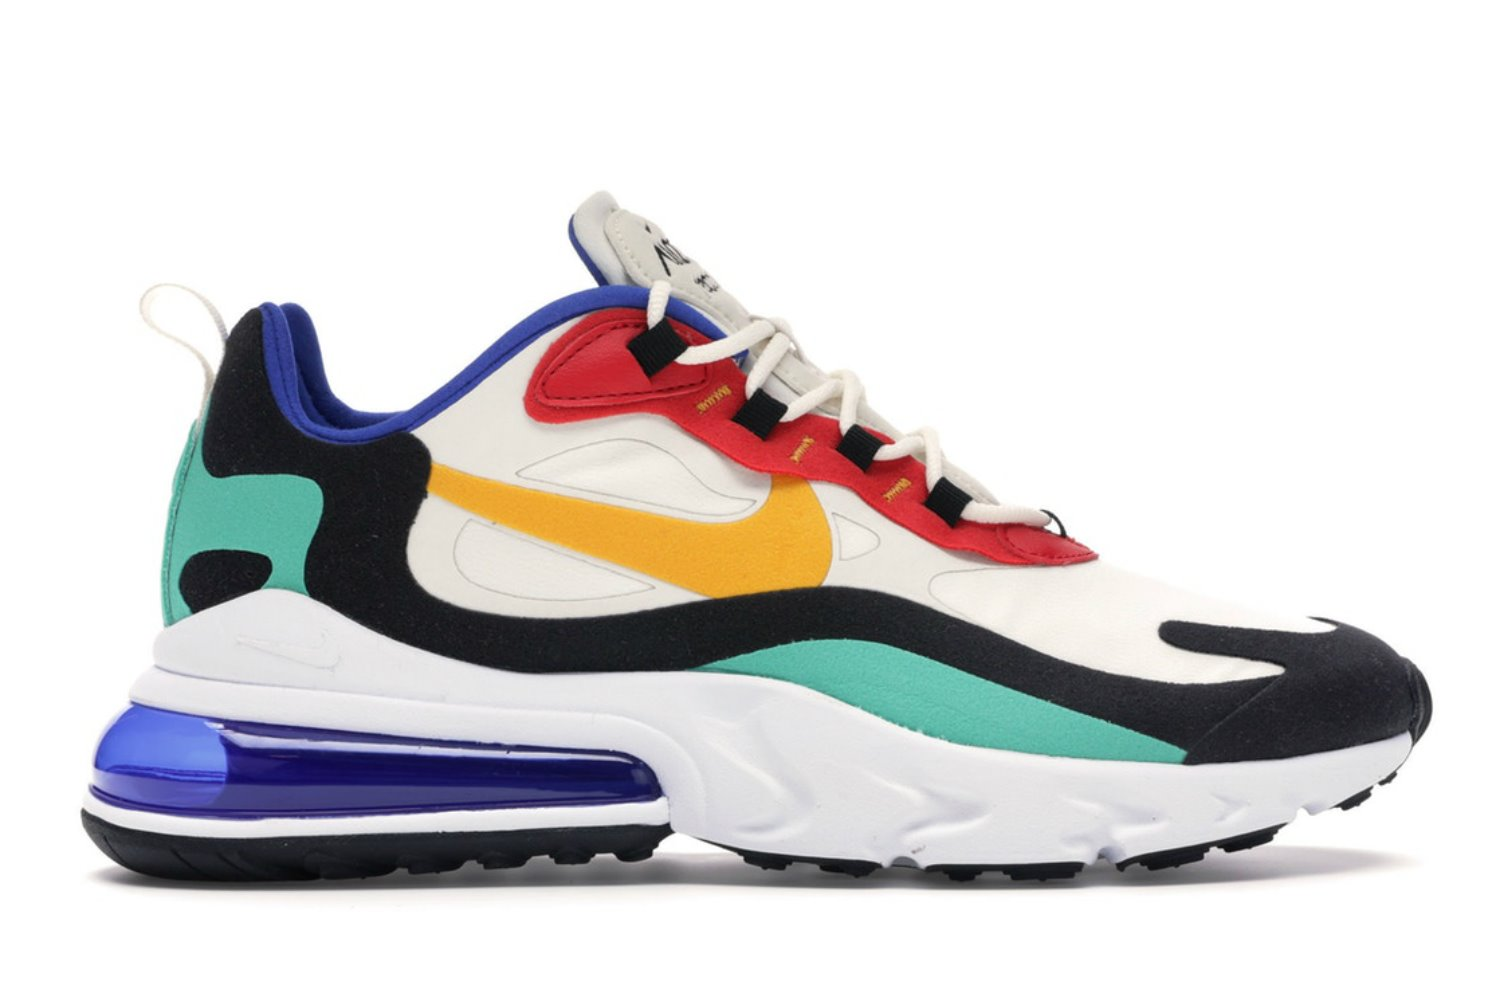 Air Max 270 React Bauhaus